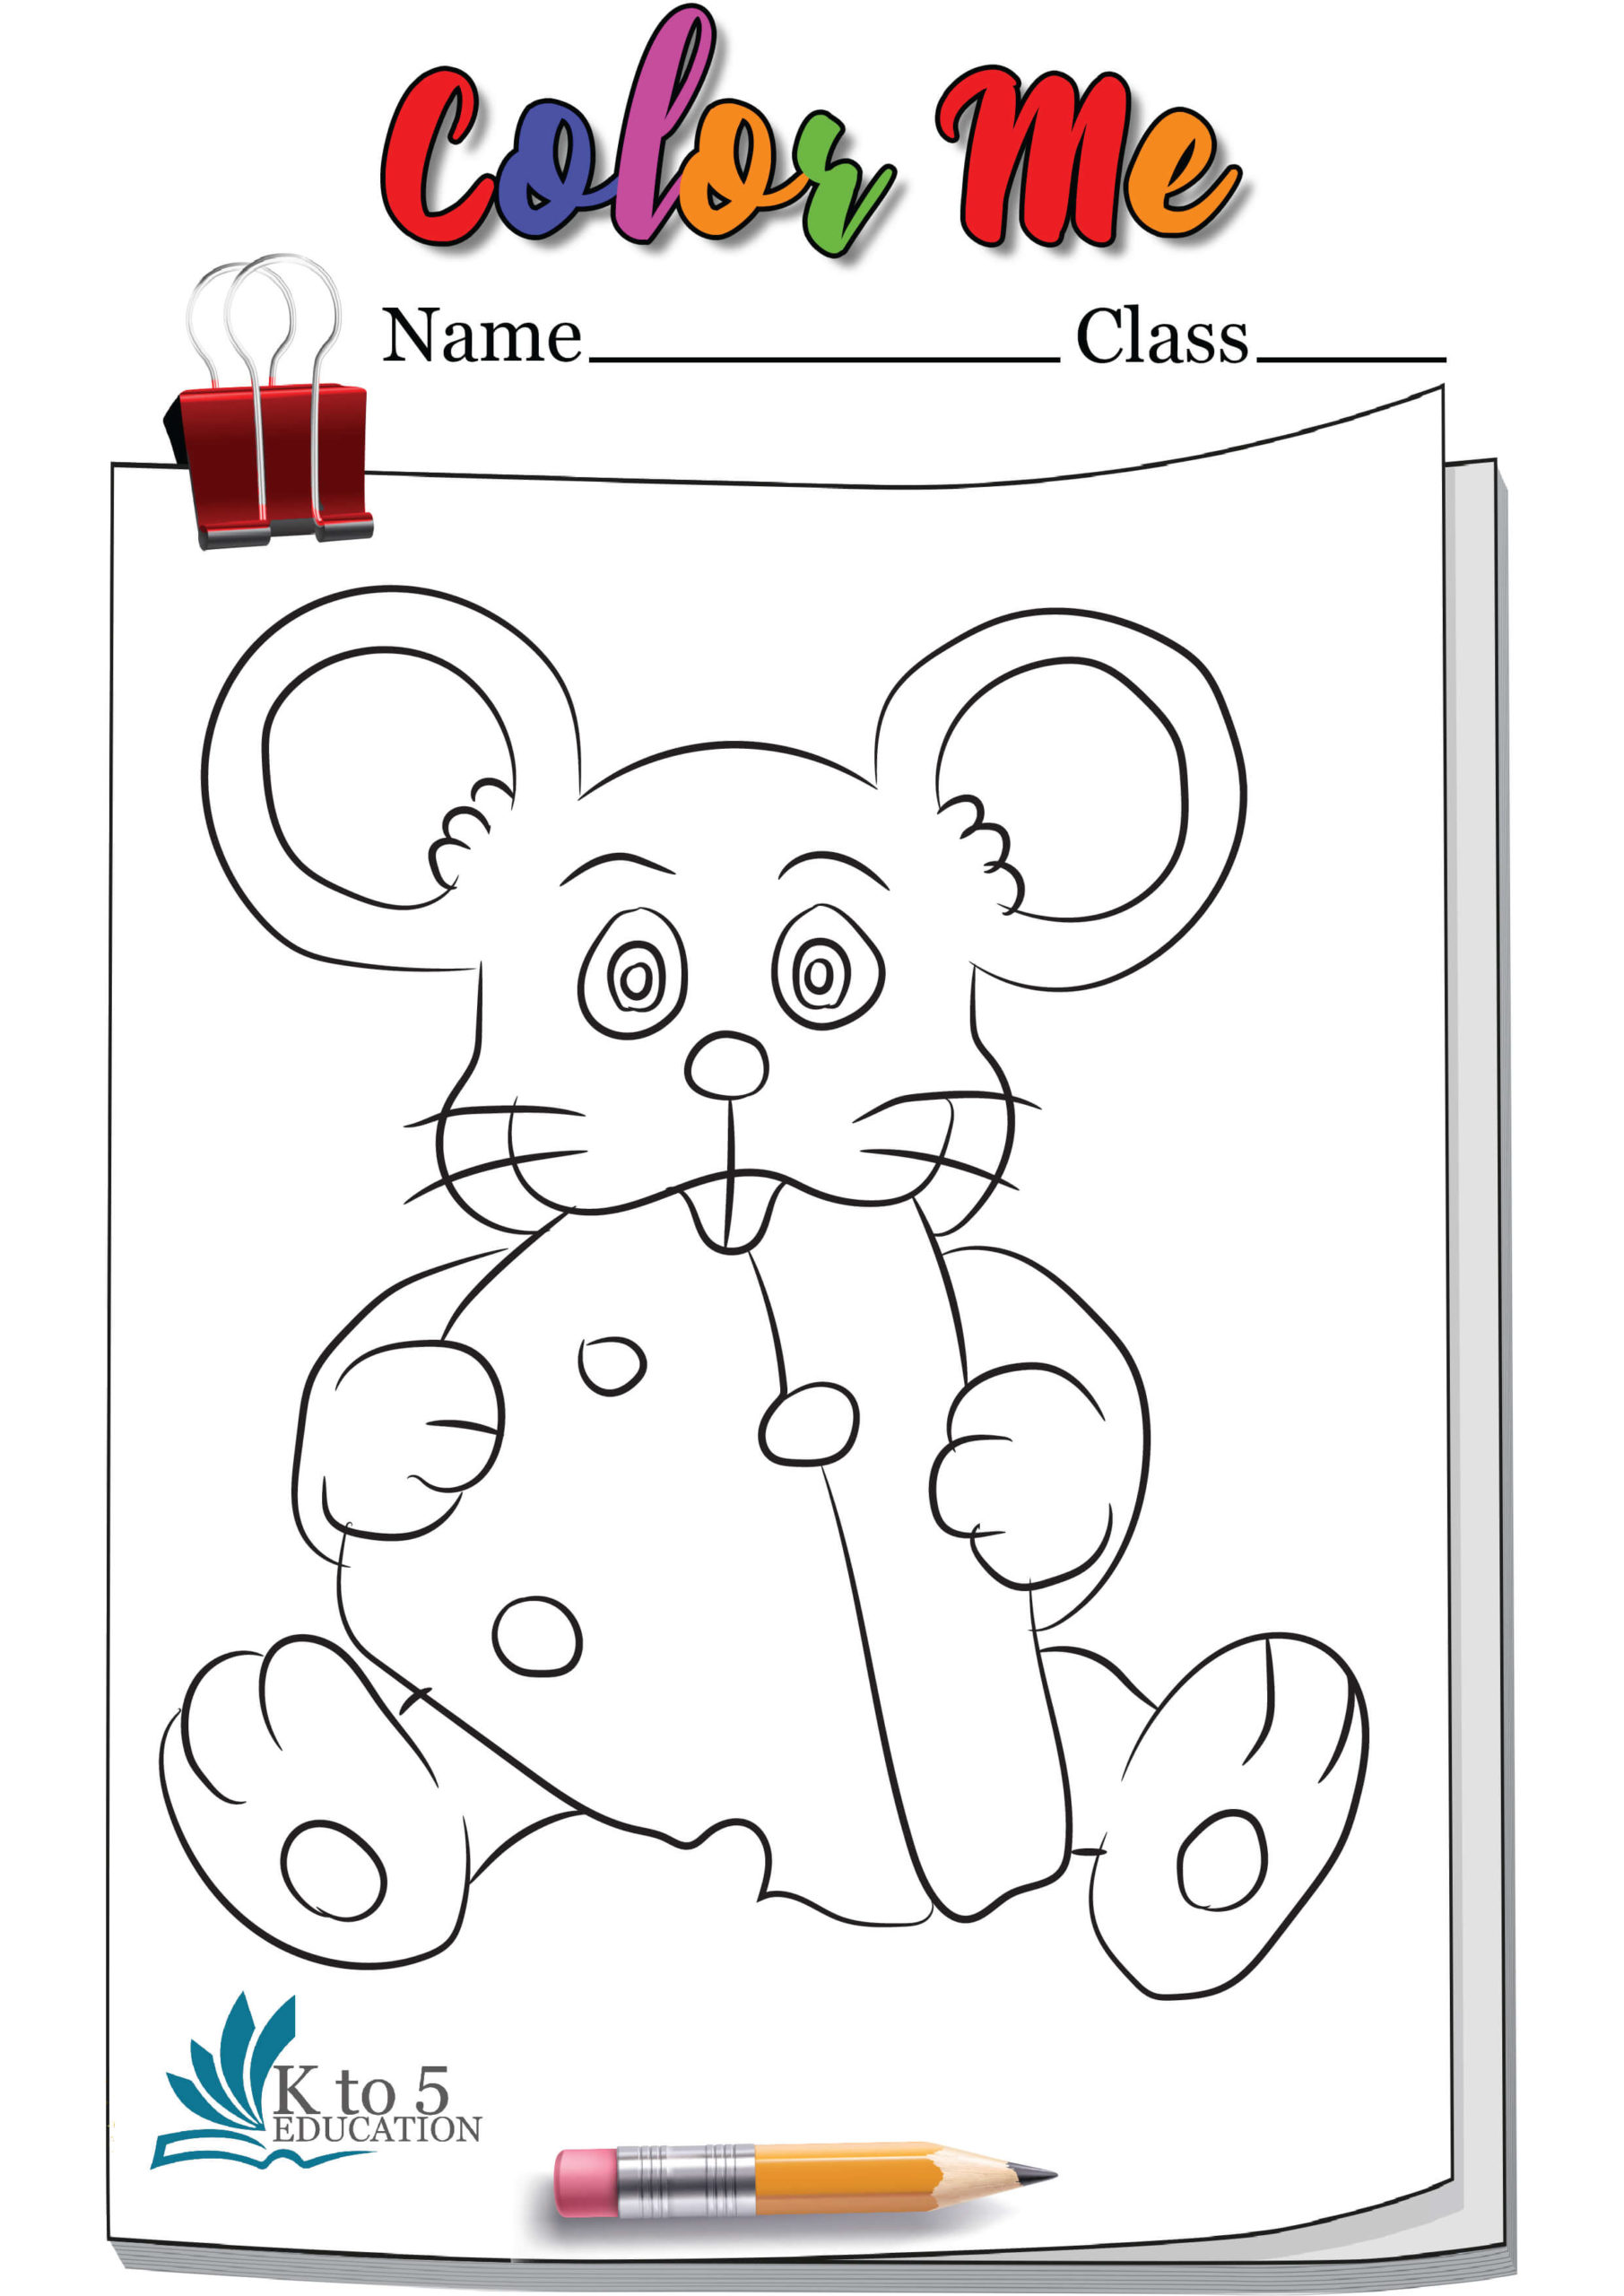 Rat Showing Thumbs Up Coloring Page Worksheet